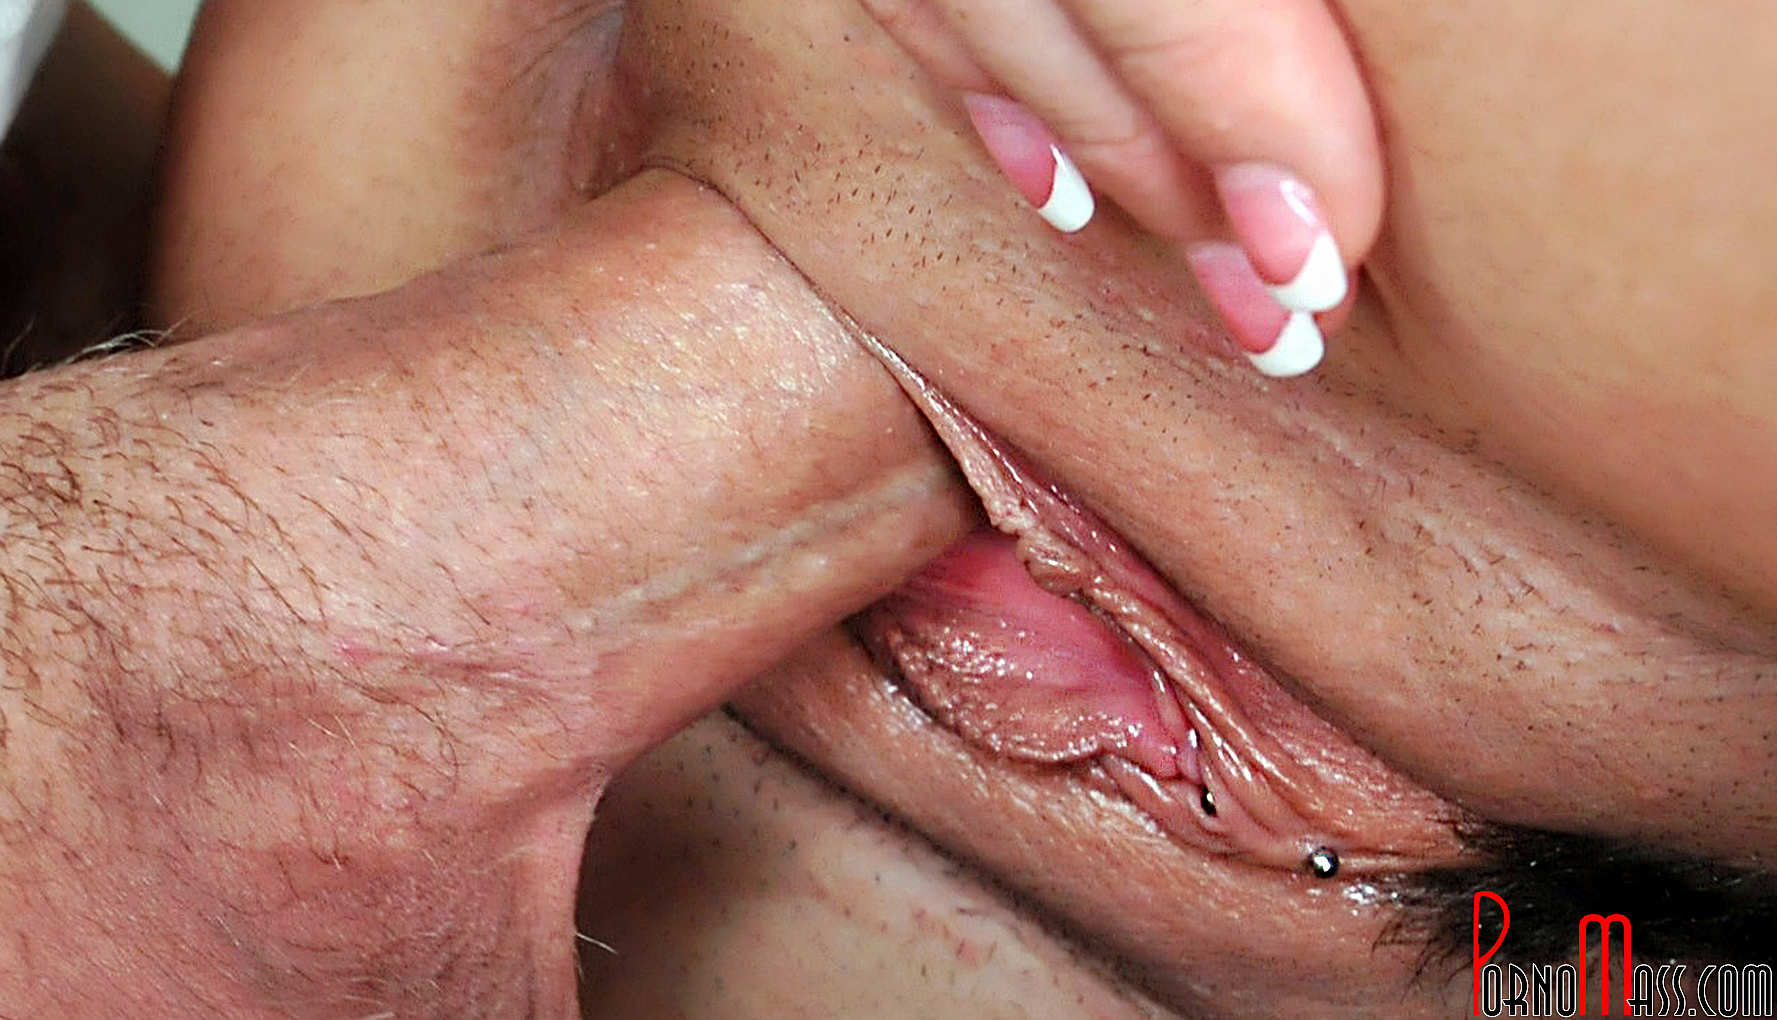 necessary words... super, milf multiple orgasm fuck was and with